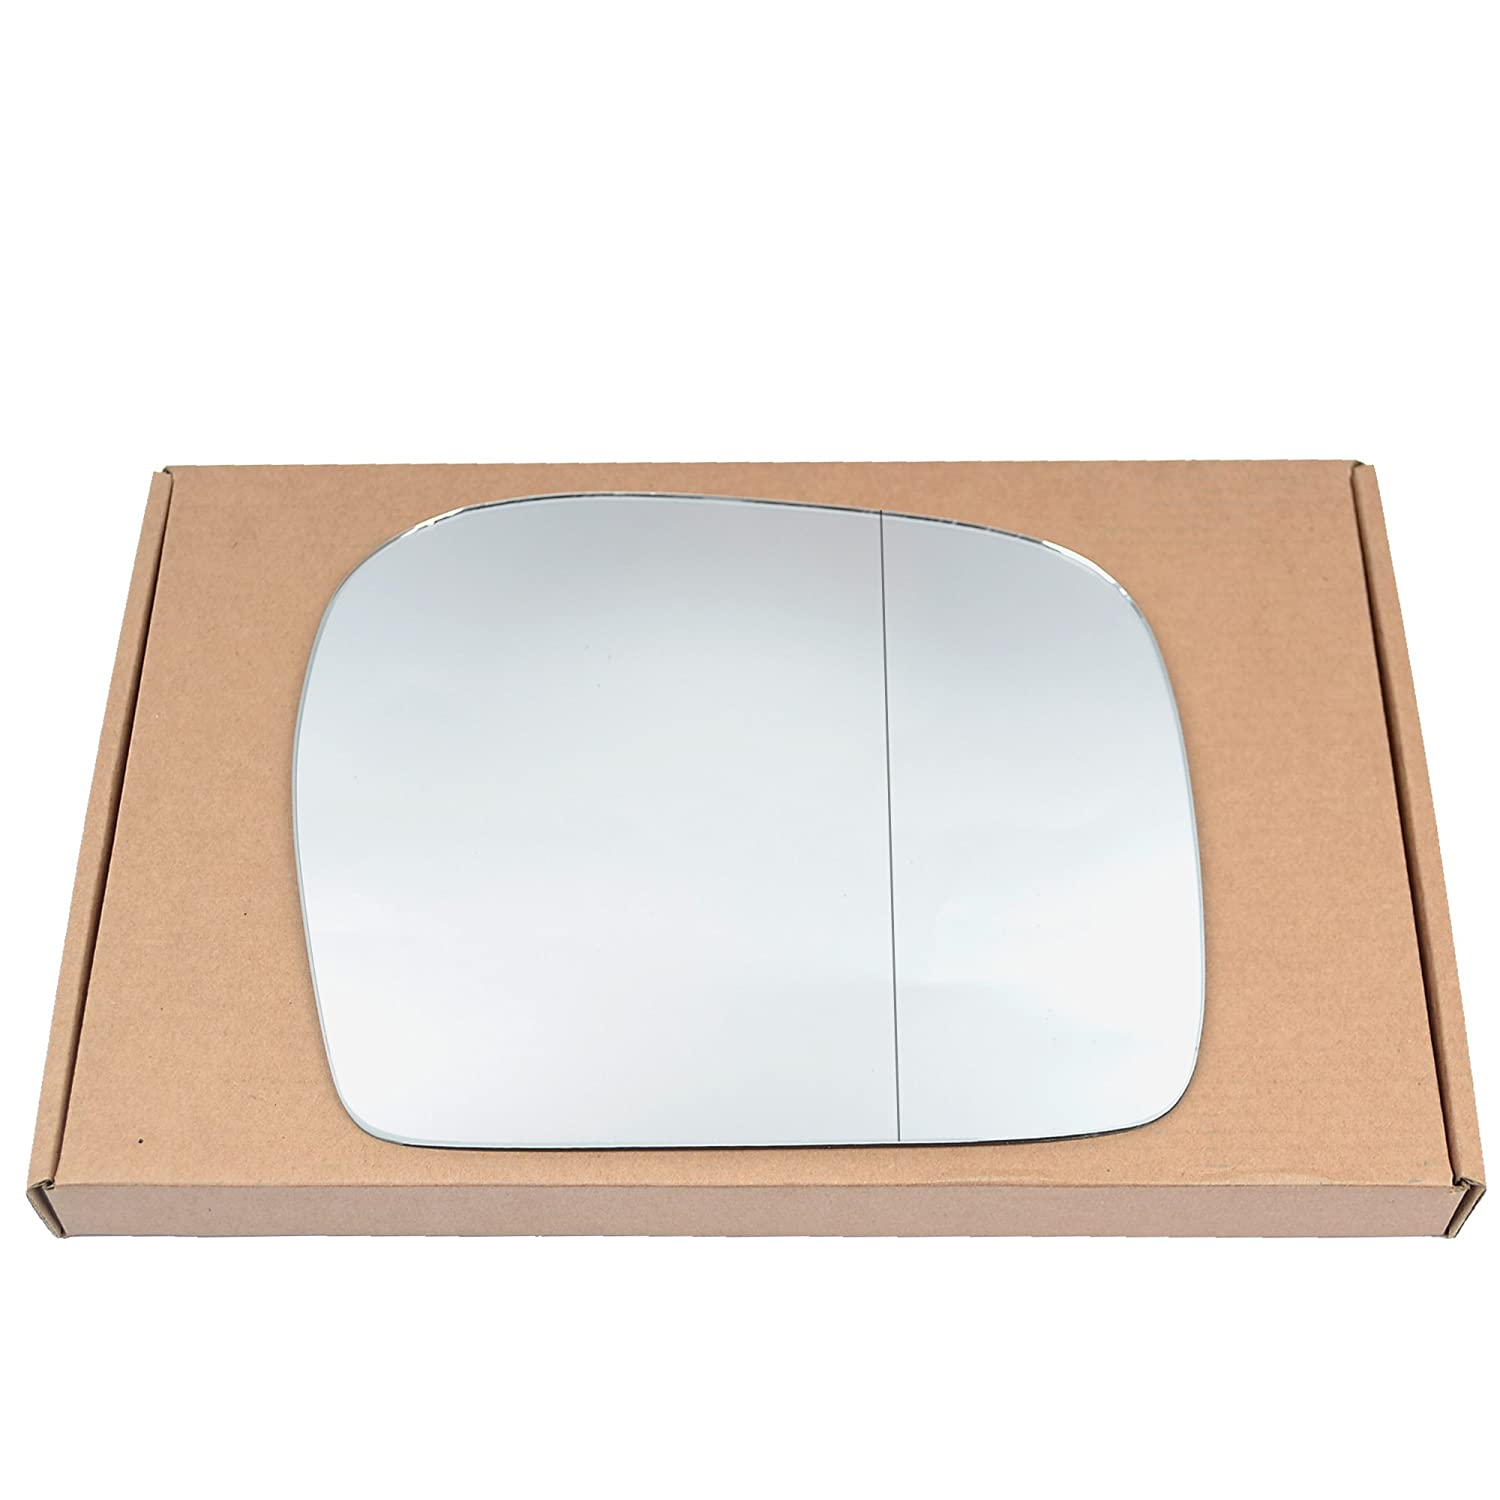 Wide Angle Right driver side Silver Wing mirror glass # ToHil//m11-1905954//590